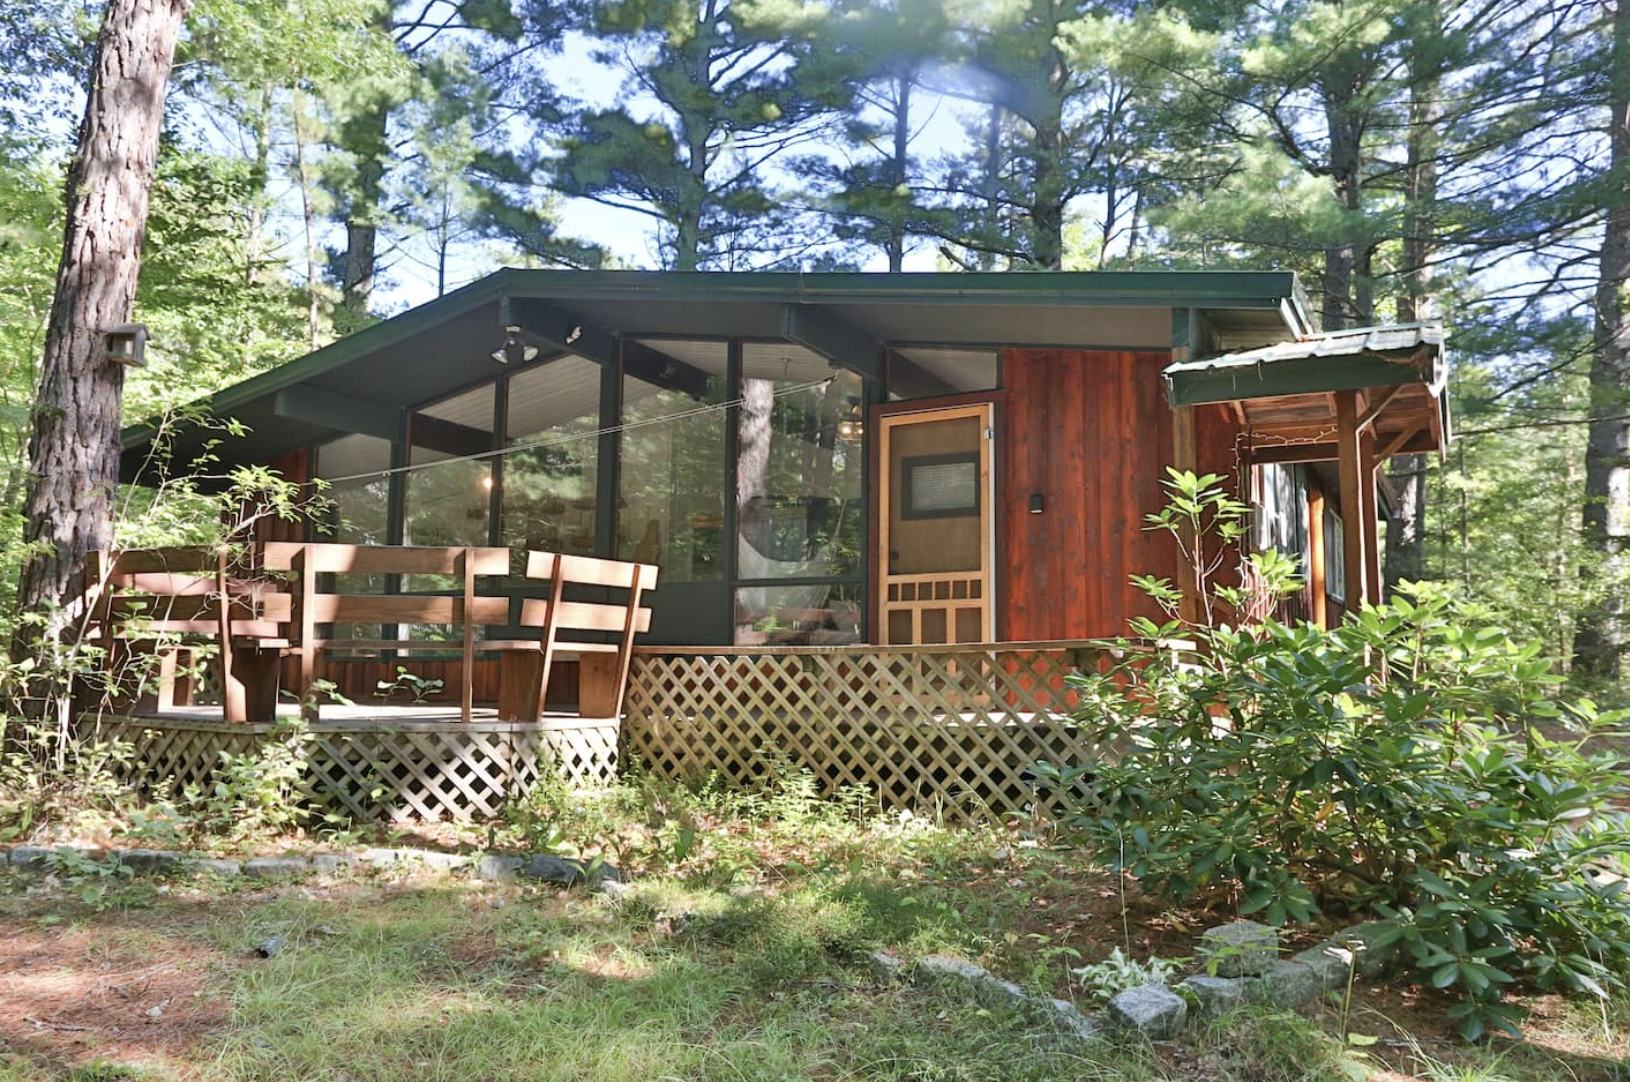 mountain chic New Hampshire family getaway from blog post by Nicole Eva 8 airbnb locations I would visit right now